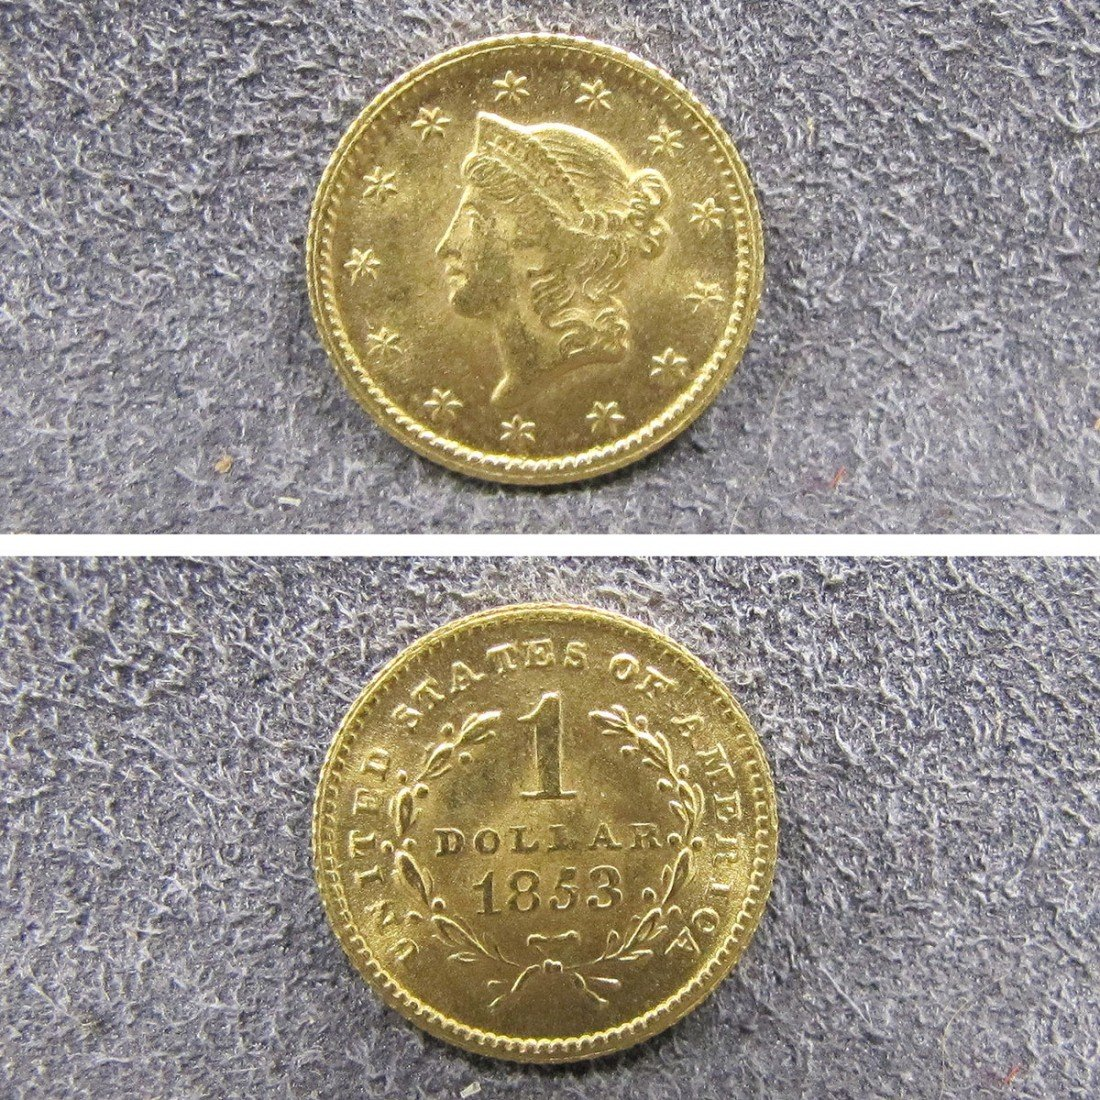 24: US 1853 TYPE 1 GOLD DOLLAR COIN